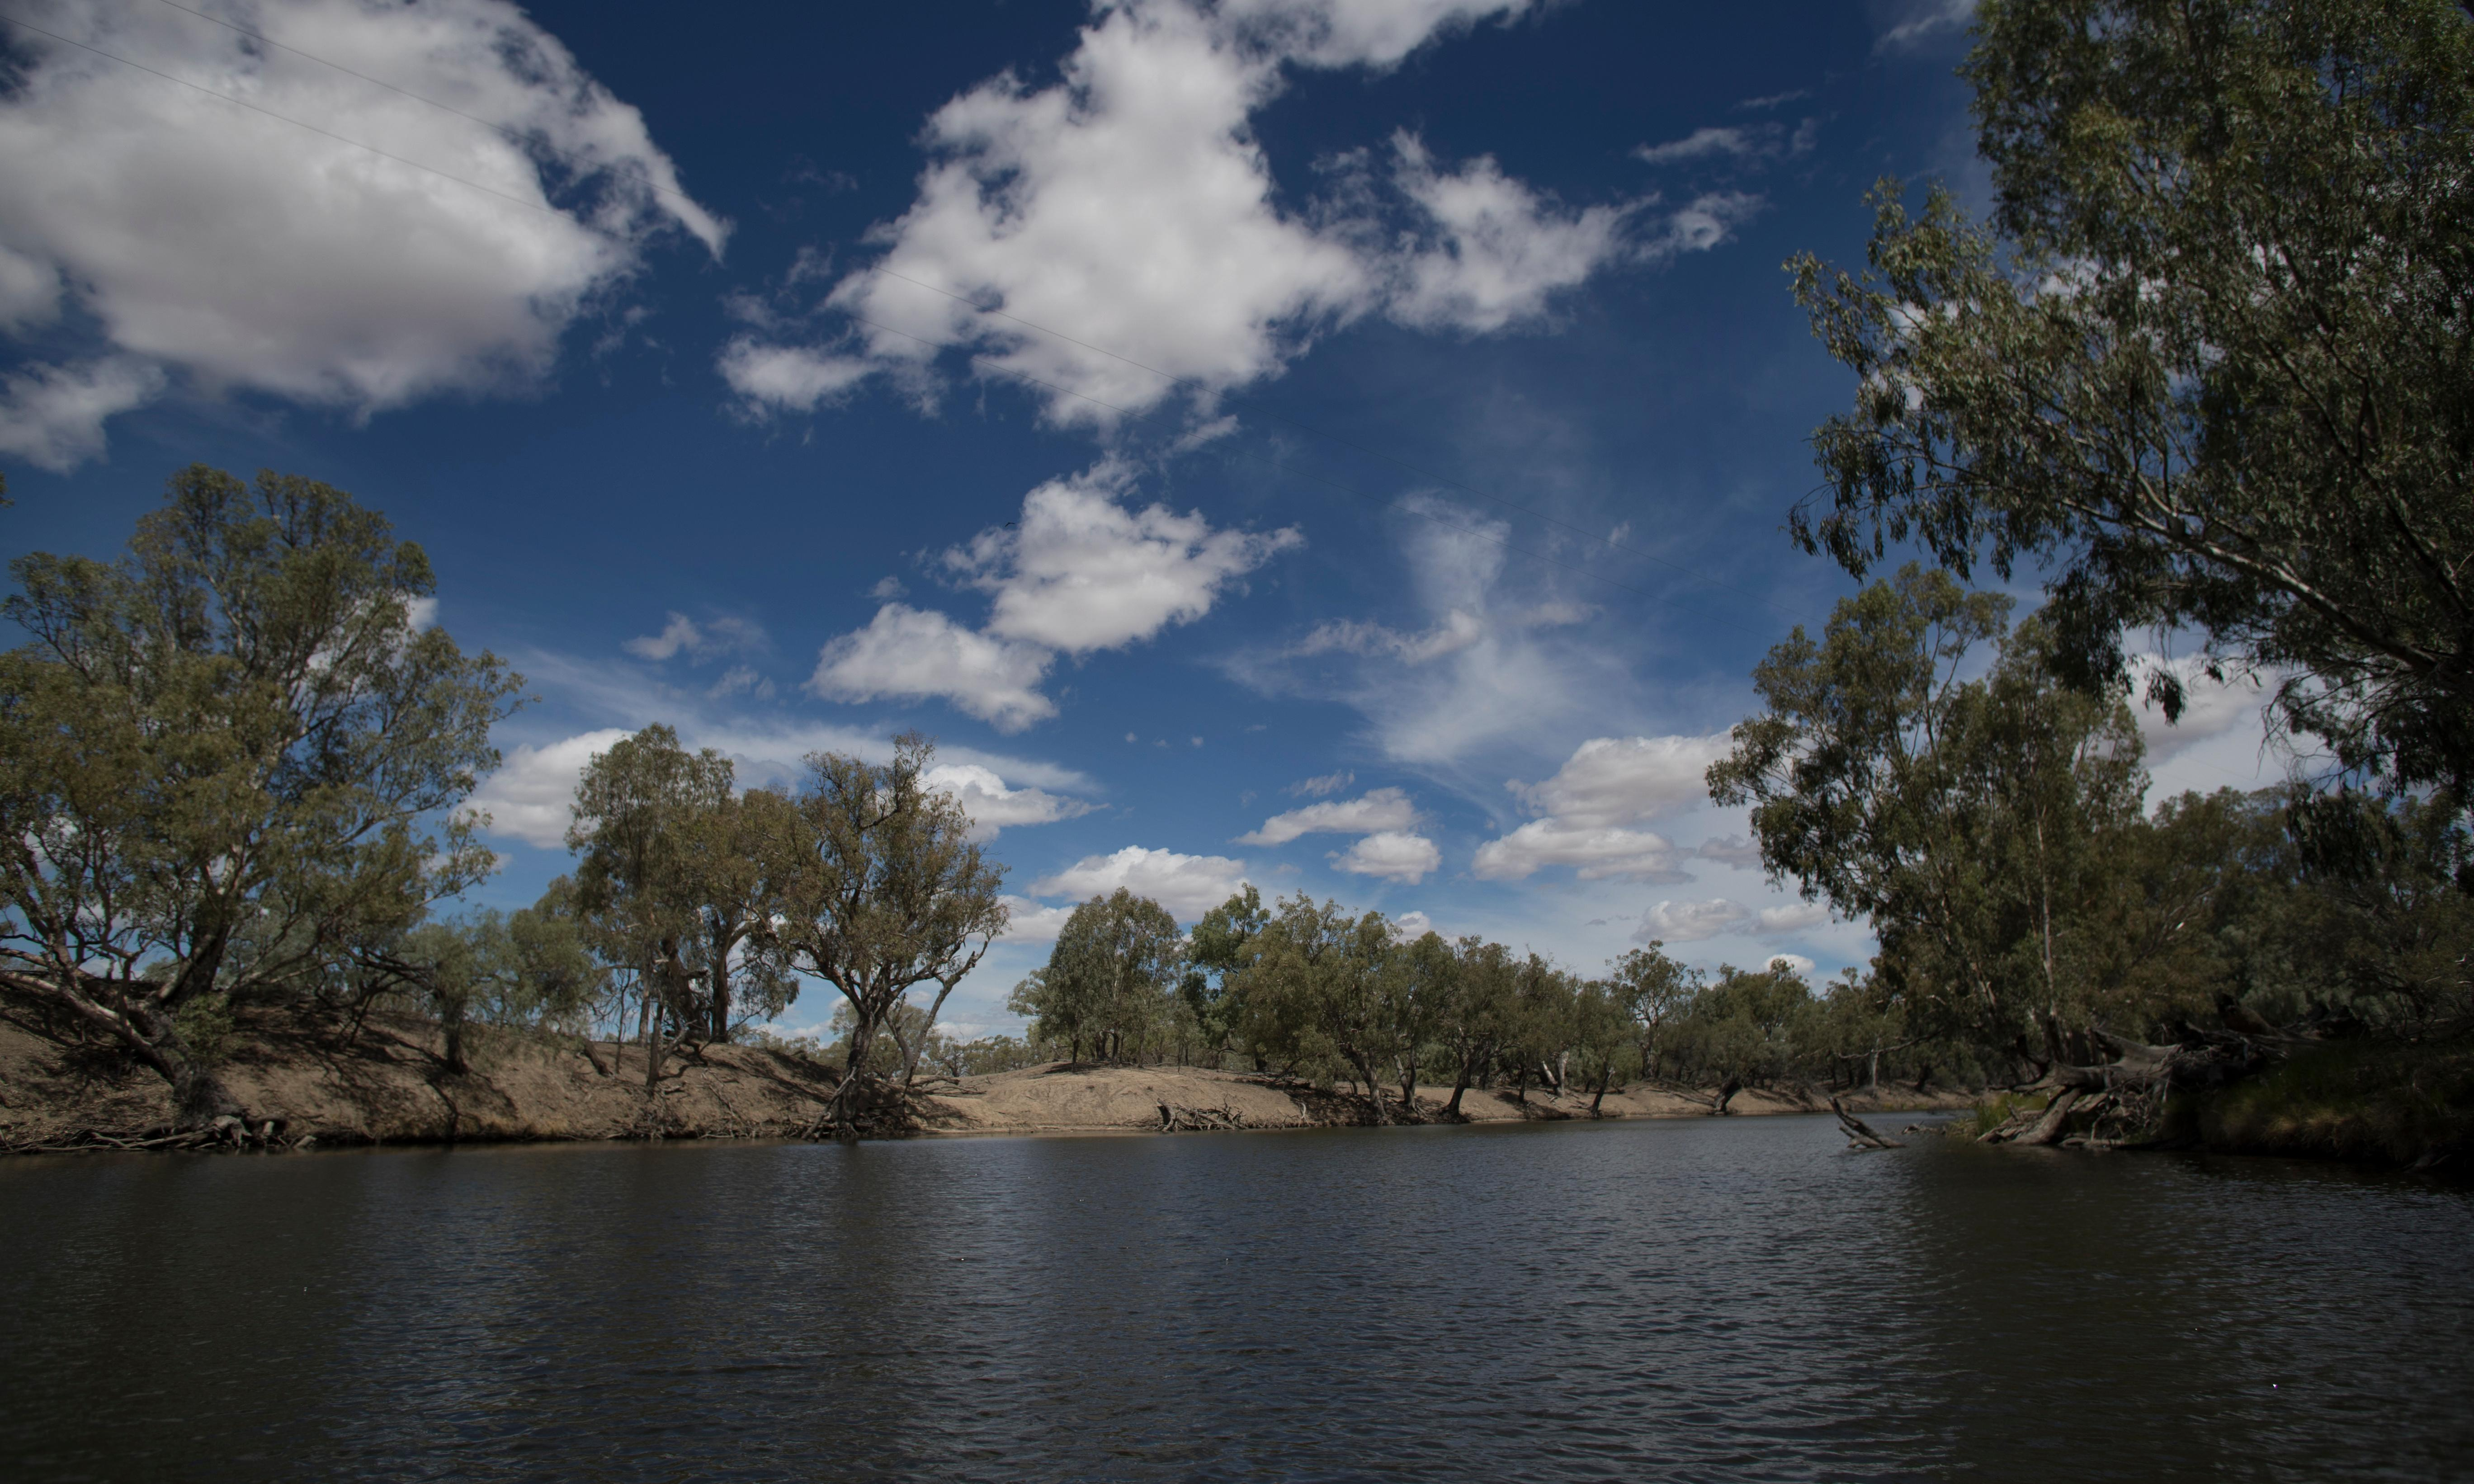 Big irrigators take 86% of water from Barwon-Darling, report finds